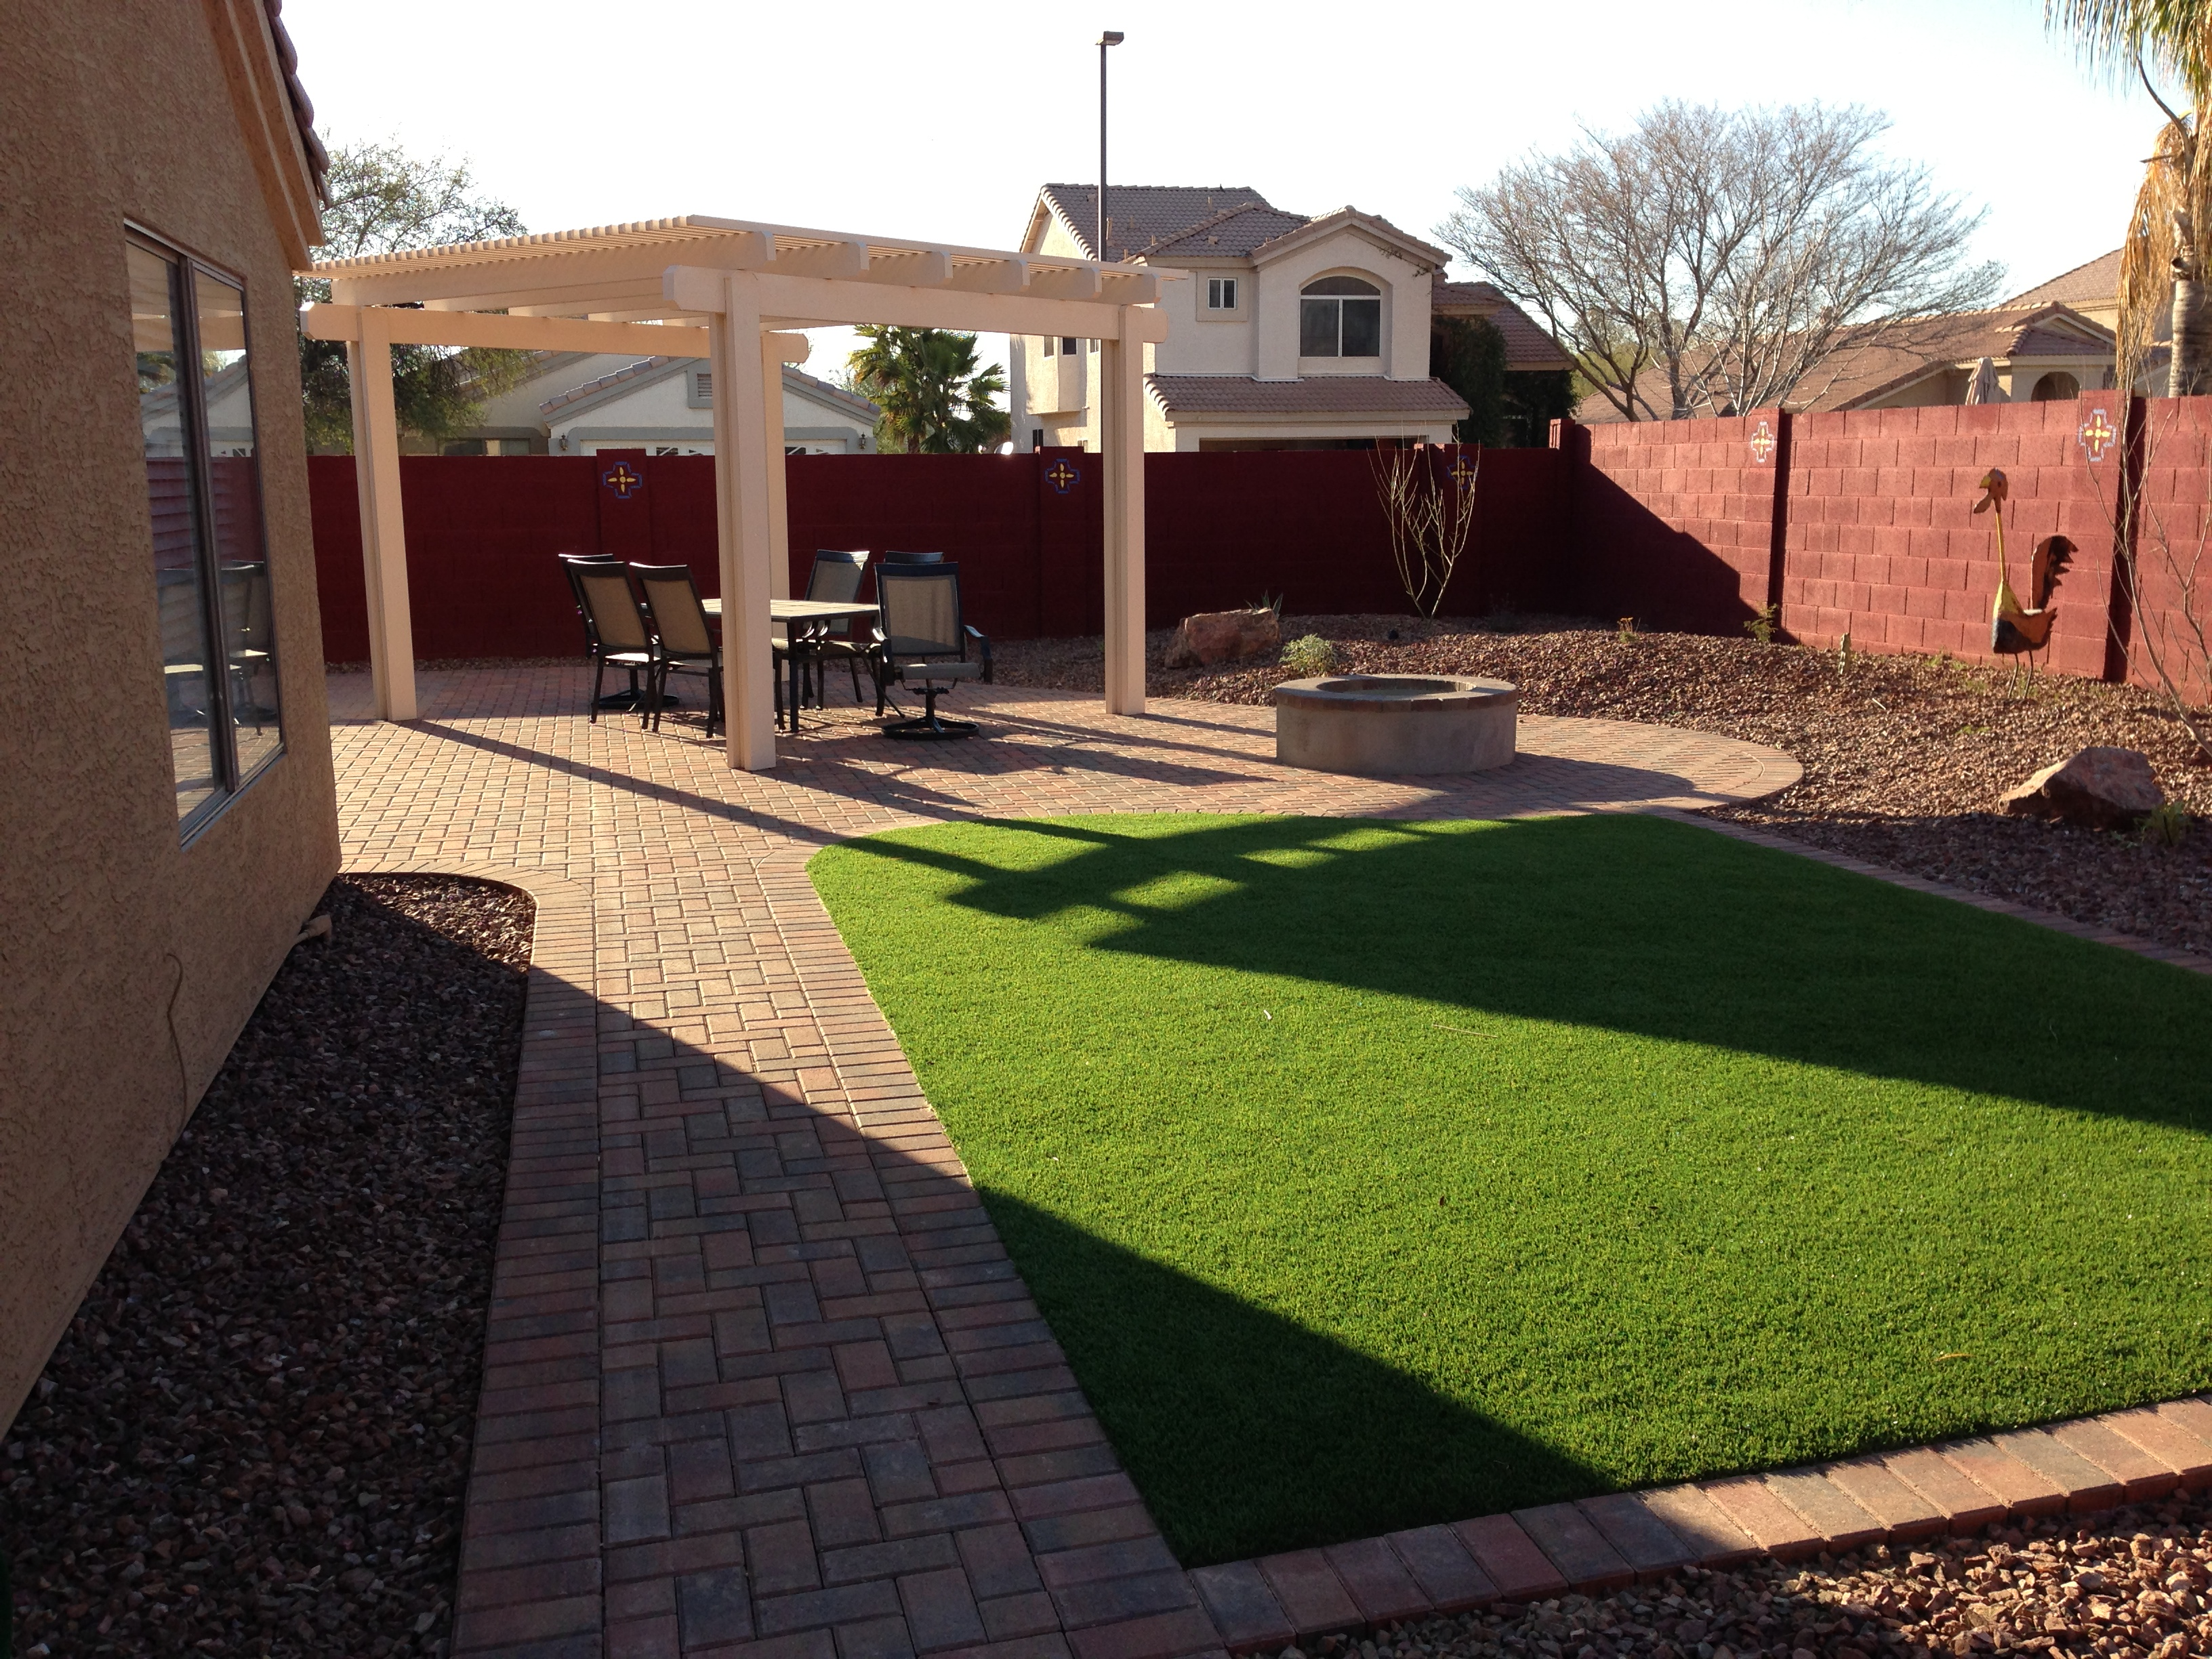 Phoenix area backyard landscape design ideas and news for Backyard design ideas arizona